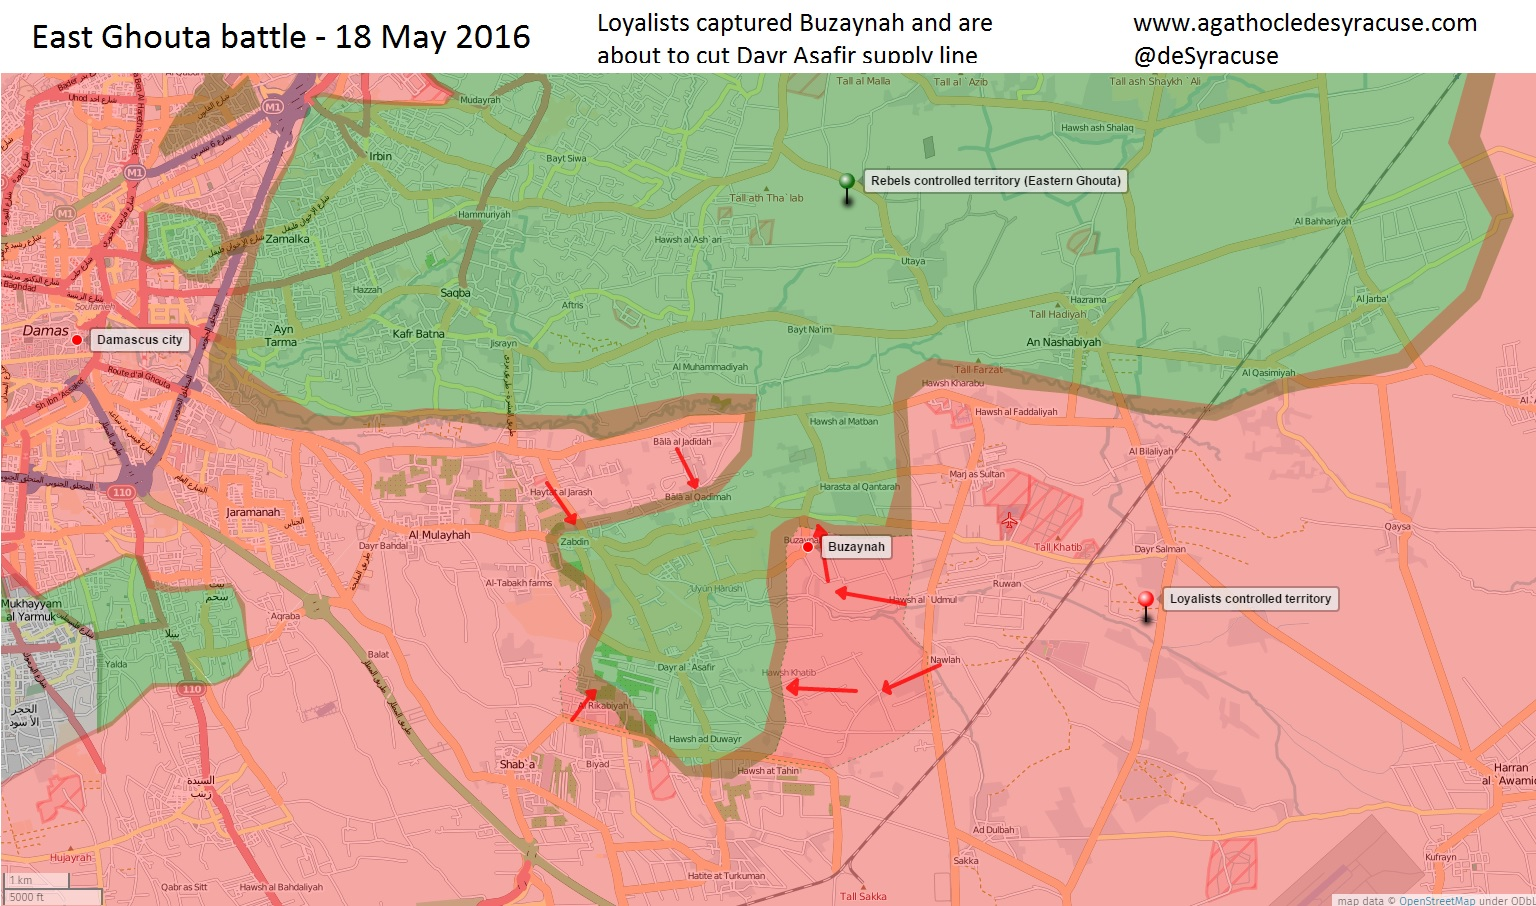 Loyalists Take Bazyna from Jihadists in Eas Ghouta, Syria